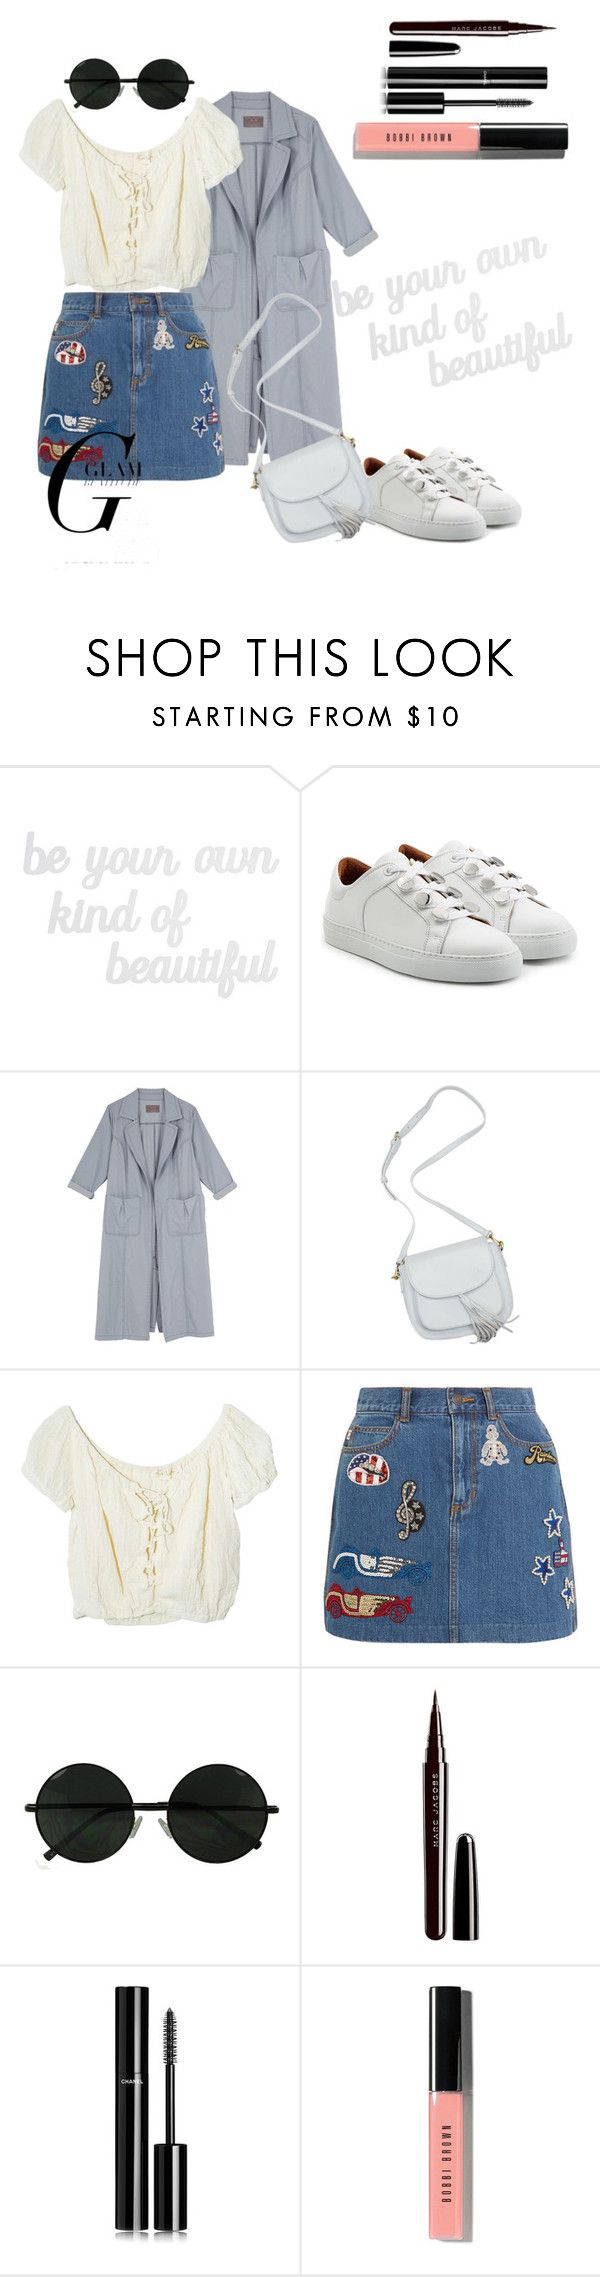 """""""Bright White Sneakers"""" by adelaidefashion ❤ liked on Polyvore featuring PBteen, Carven, Melissa McCarthy Seven7, Jens Pirate Booty, Marc Jacobs, Chanel, Bobbi Brown Cosmetics and plus size clothing"""